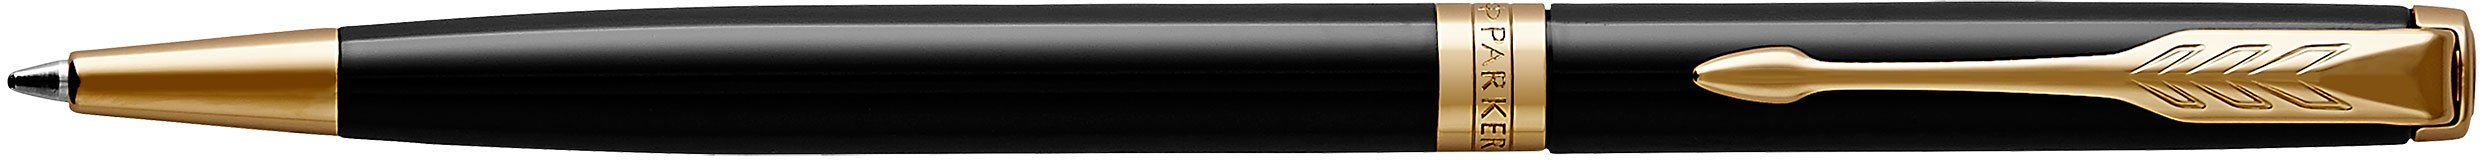 Шариковая ручка Parker Sonnet Core K430 Slim, Laque Black GT